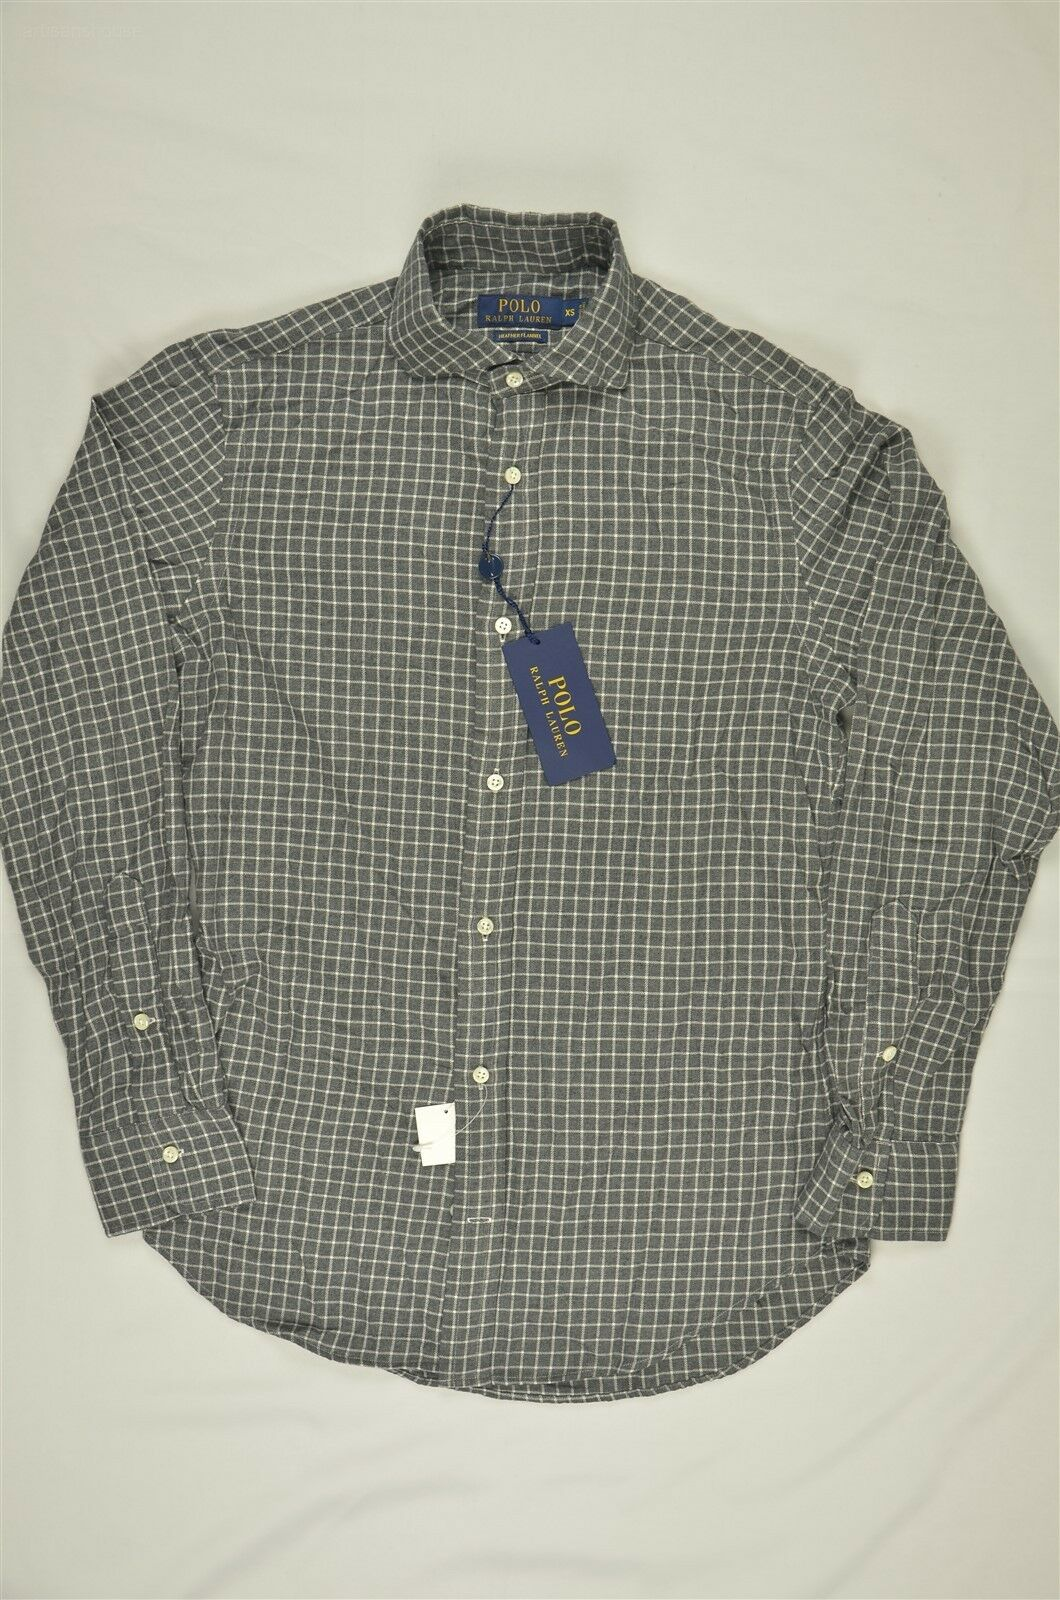 NEW MEN'S Polo Ralph Lauren Plaid Twill Flannel Casual Shirt XXL